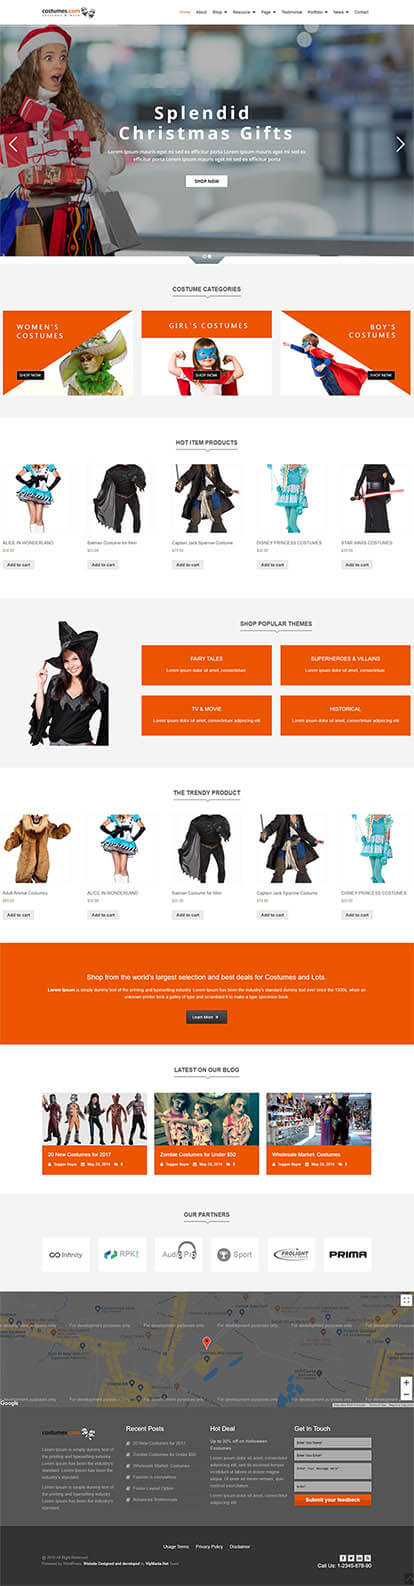 Costumes WORDPRESS THEME Full Demo